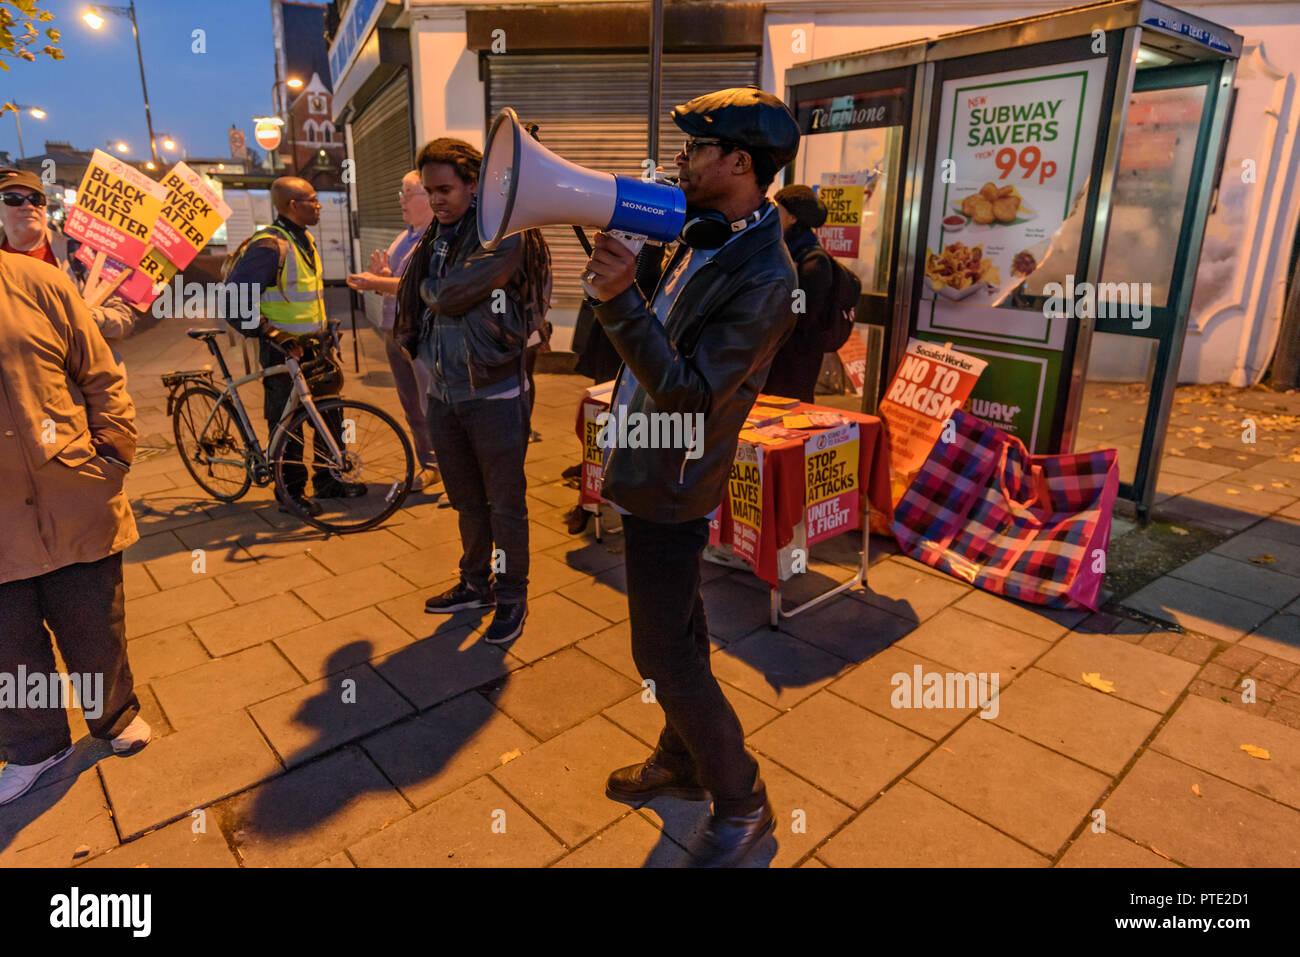 London, UK. October 9th 2018. Brian Richardson of Stand Up To Racism makes the final speech at the rally outside the New Atlas Cafe Restaurant where a young black man was attacked by police who used obviously unnecessary force when arresting him on suspicion of having been involved in a knife attack. He was assaulted by six officers, and was viciously kicked while officers struggled to handcuff him, andwhen he was well under control and held on the ground he was sprayed in the face with CS gas. Credit: Peter Marshall/Alamy Live News - Stock Image